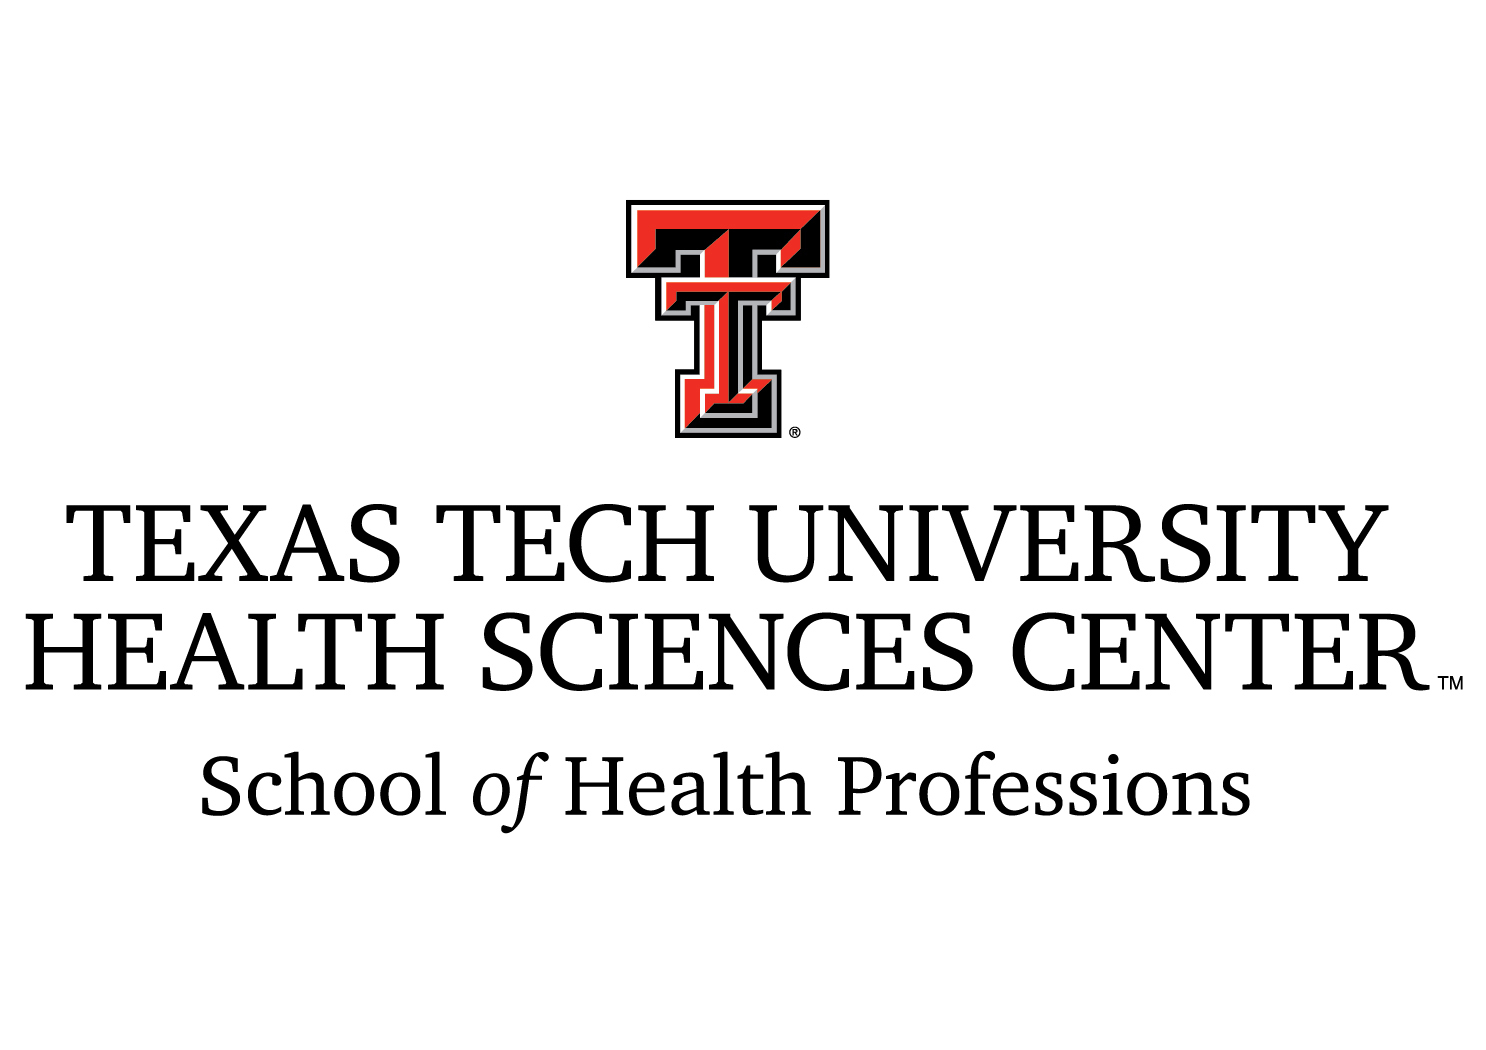 Texas Tech University Health Sciences Center In Texas Tech School Of Law Calendar